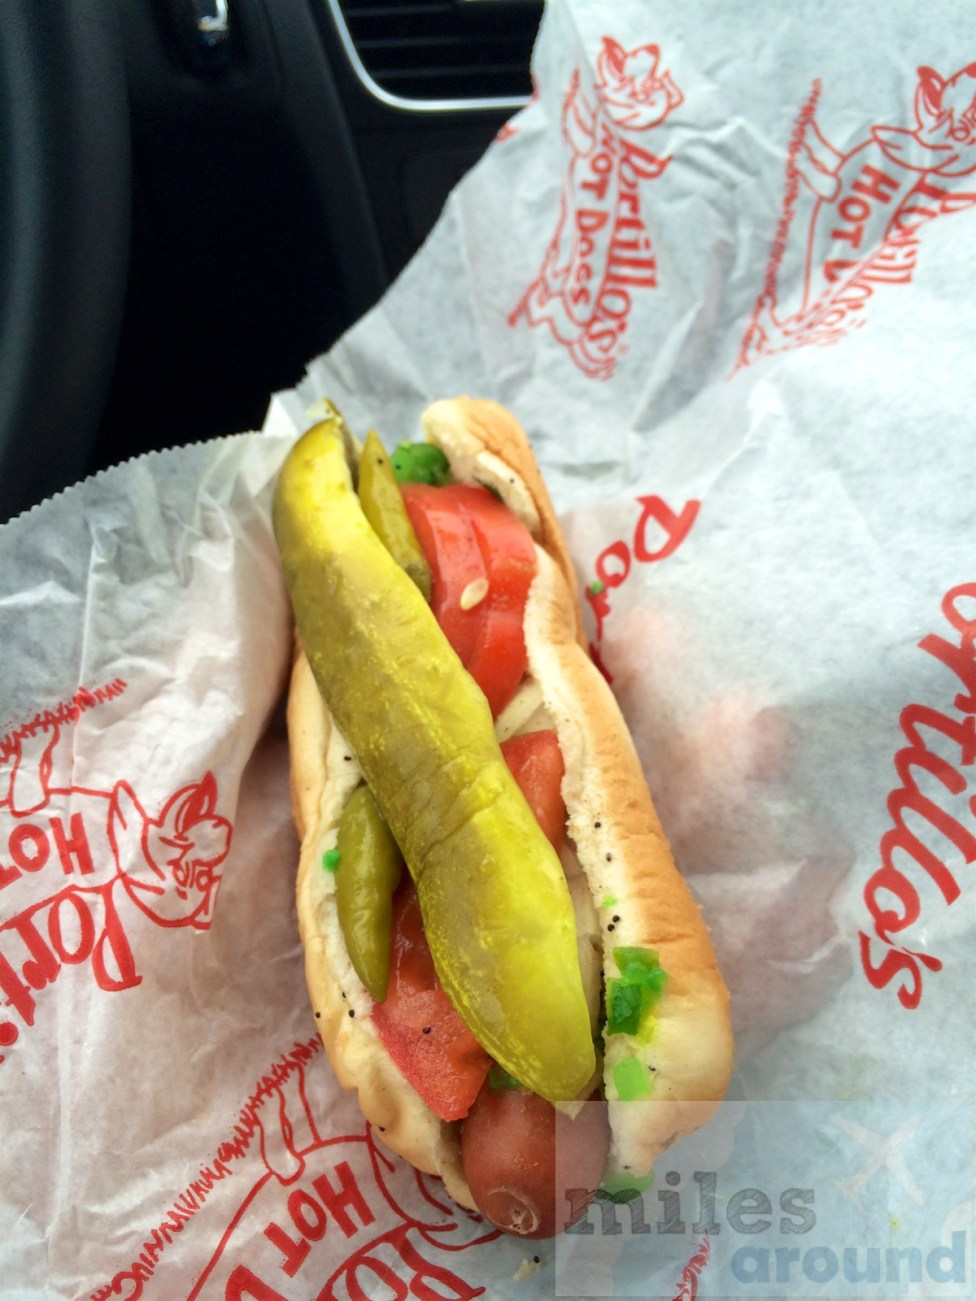 Hot Dog von Portillo's Restaurants Chicago